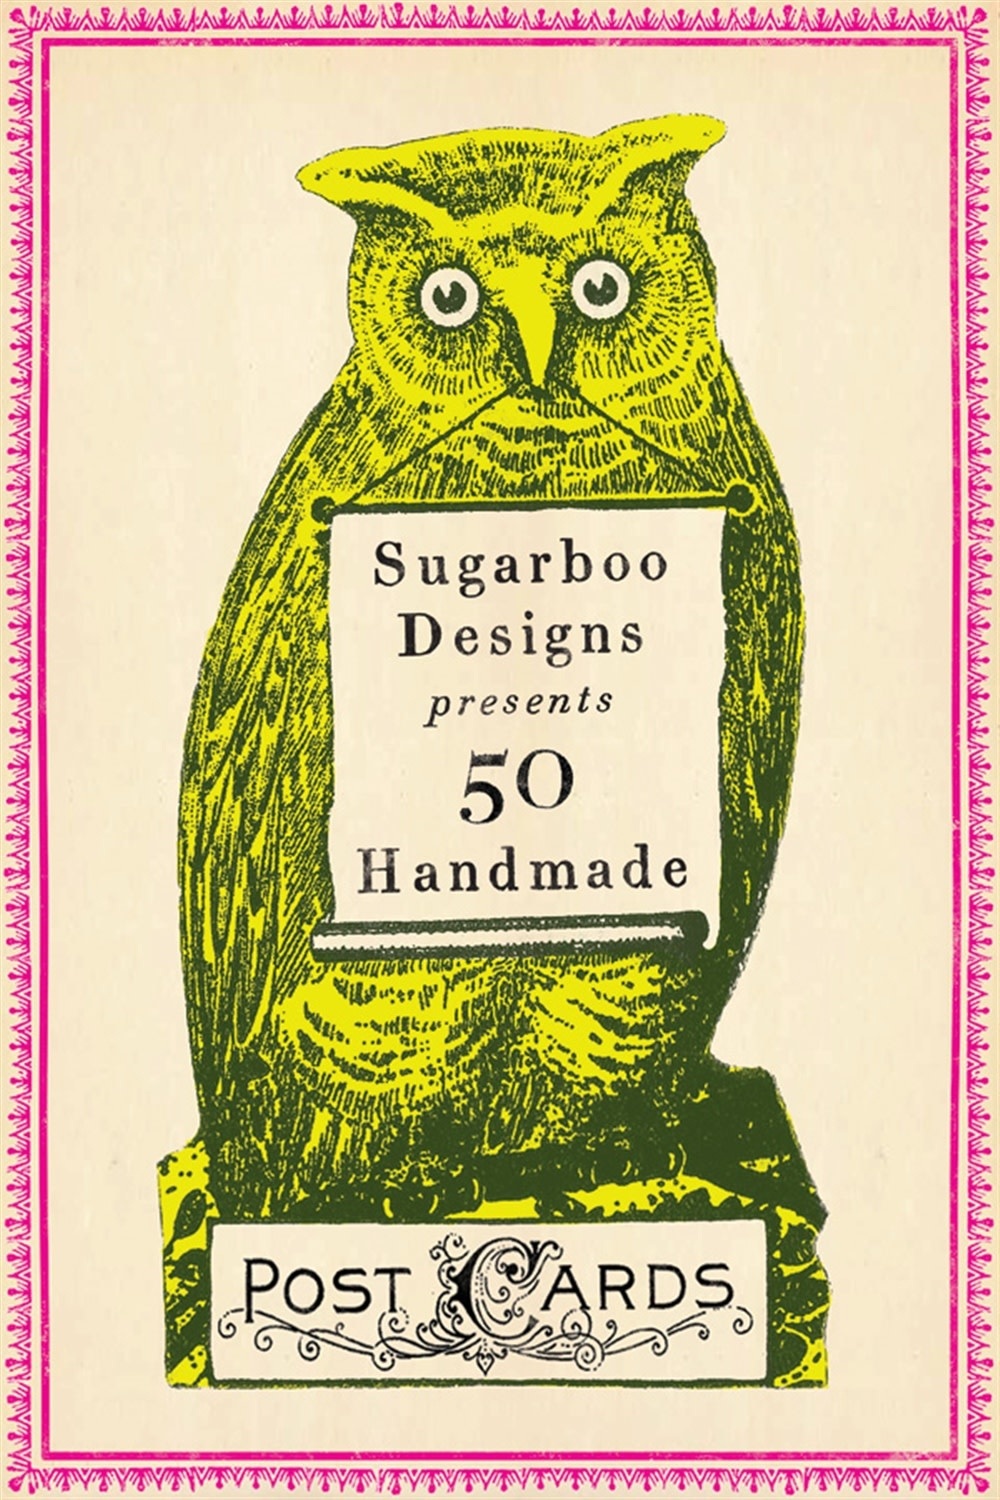 Sugarboo 4x6 Assorted Postcard